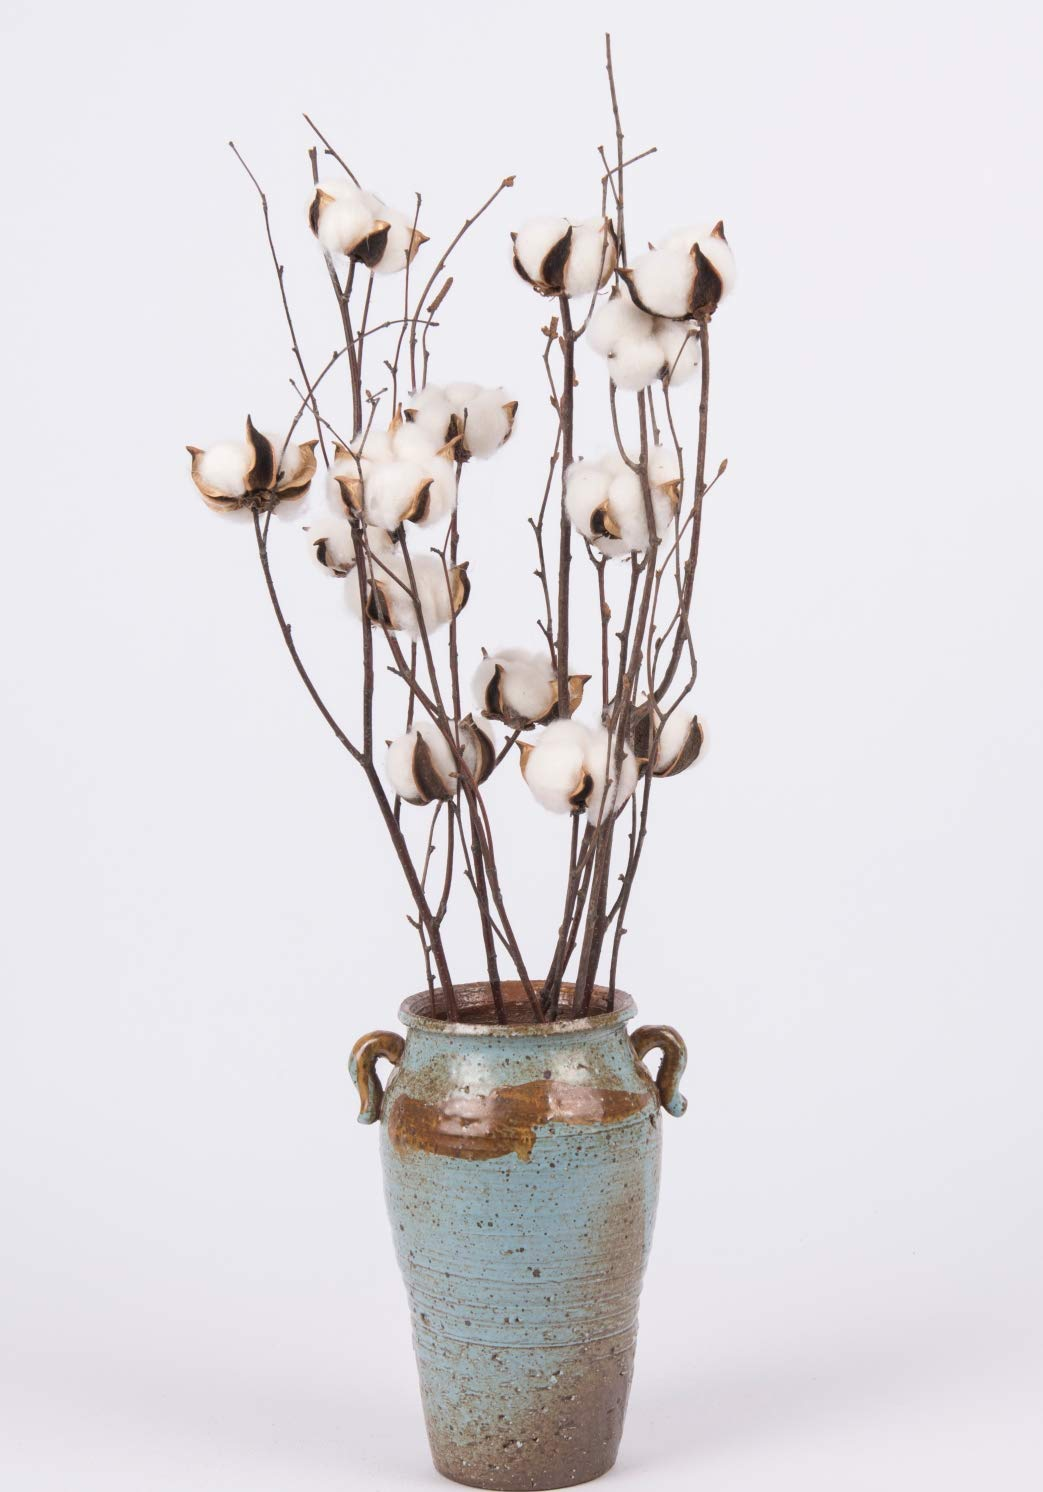 Dongliflower-Natural-Cotton-Ball-Bolls-with-25-Birch-Stem-Twig-Spray